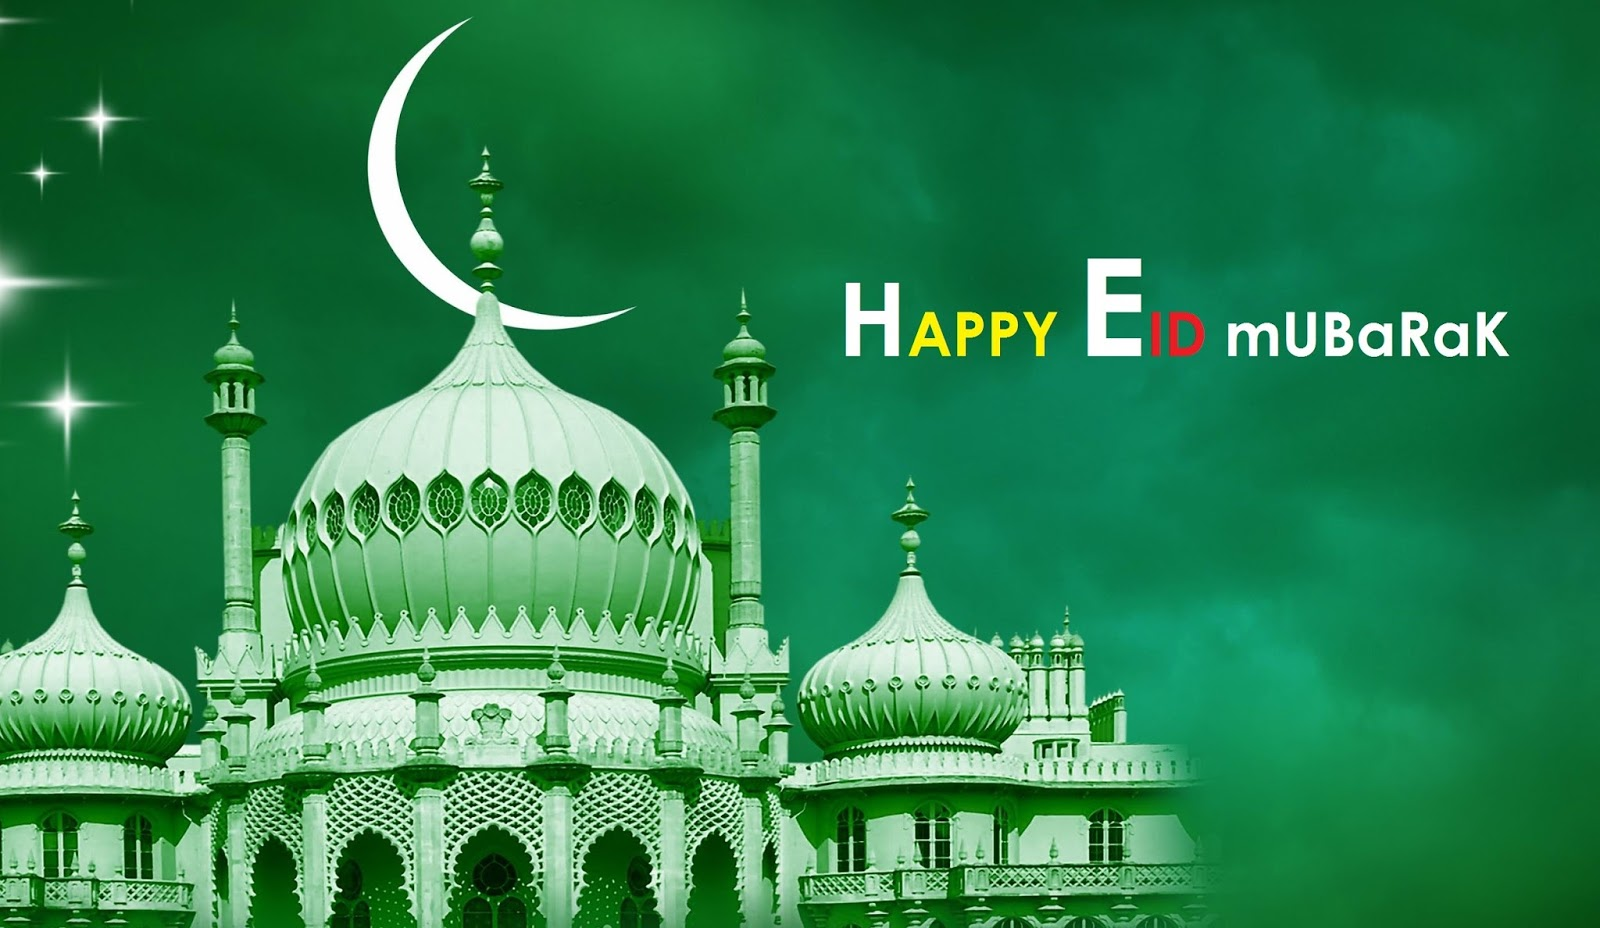 Blessing Eid Mubarak 2016 WallPaper Download Free Wallpaper